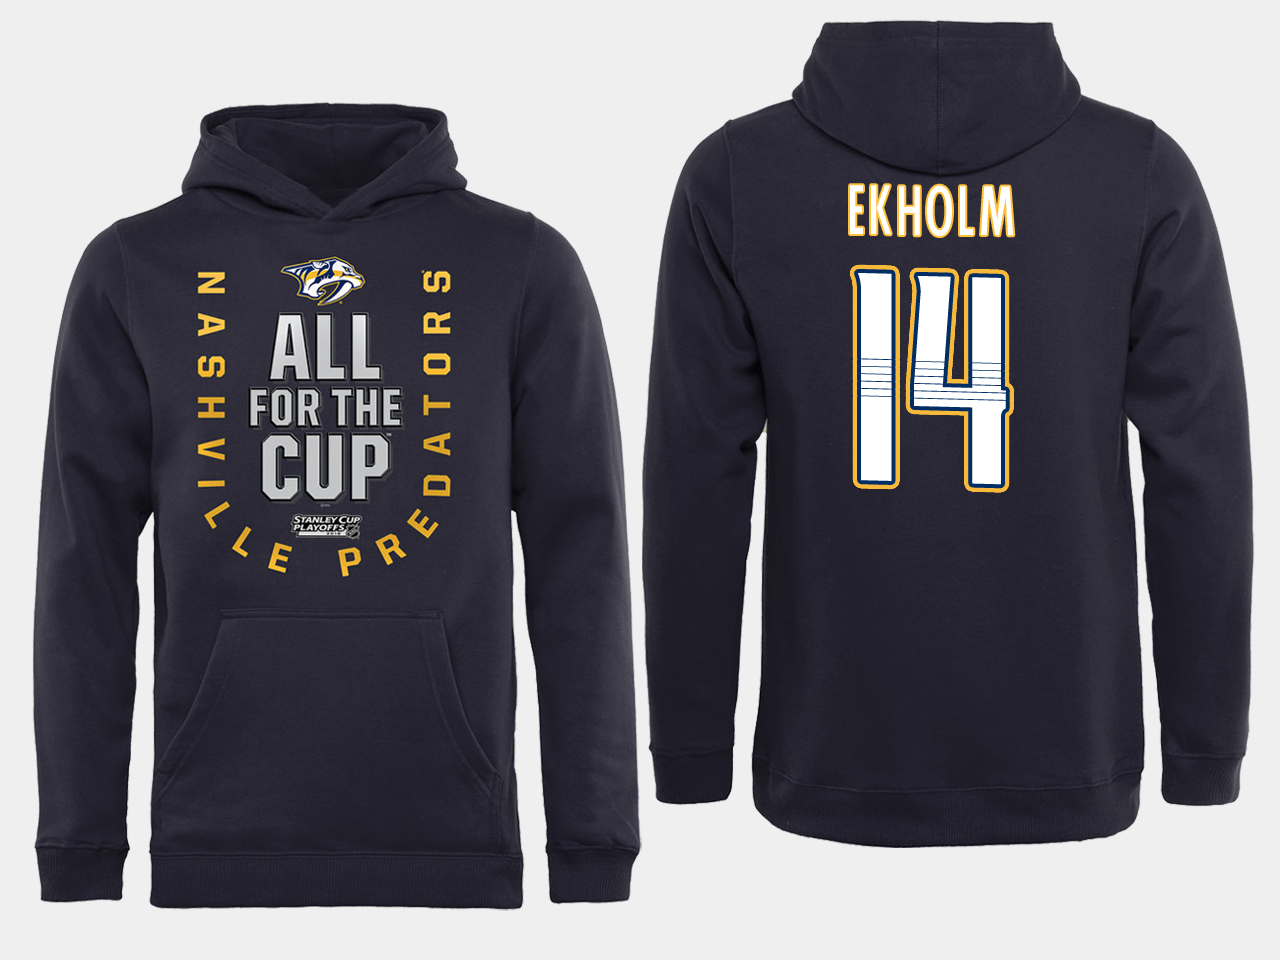 Men NHL Adidas Nashville Predators 14 Ekholm black ALL for the Cup hoodie